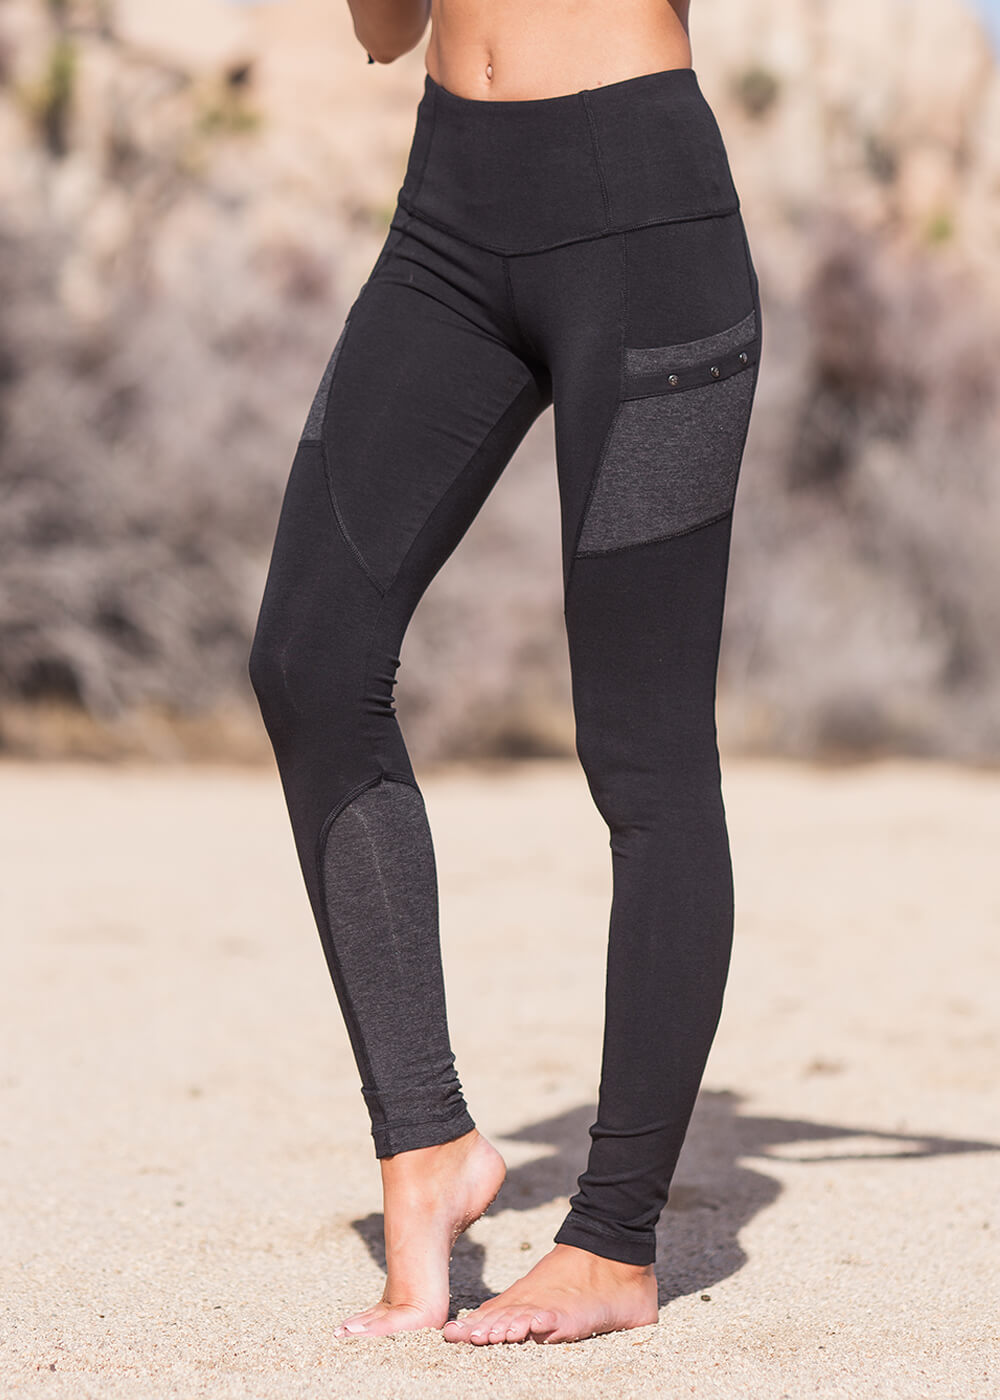 Motion Leggings in Organic Cotton & Bamboo - Nomads Hemp Wear